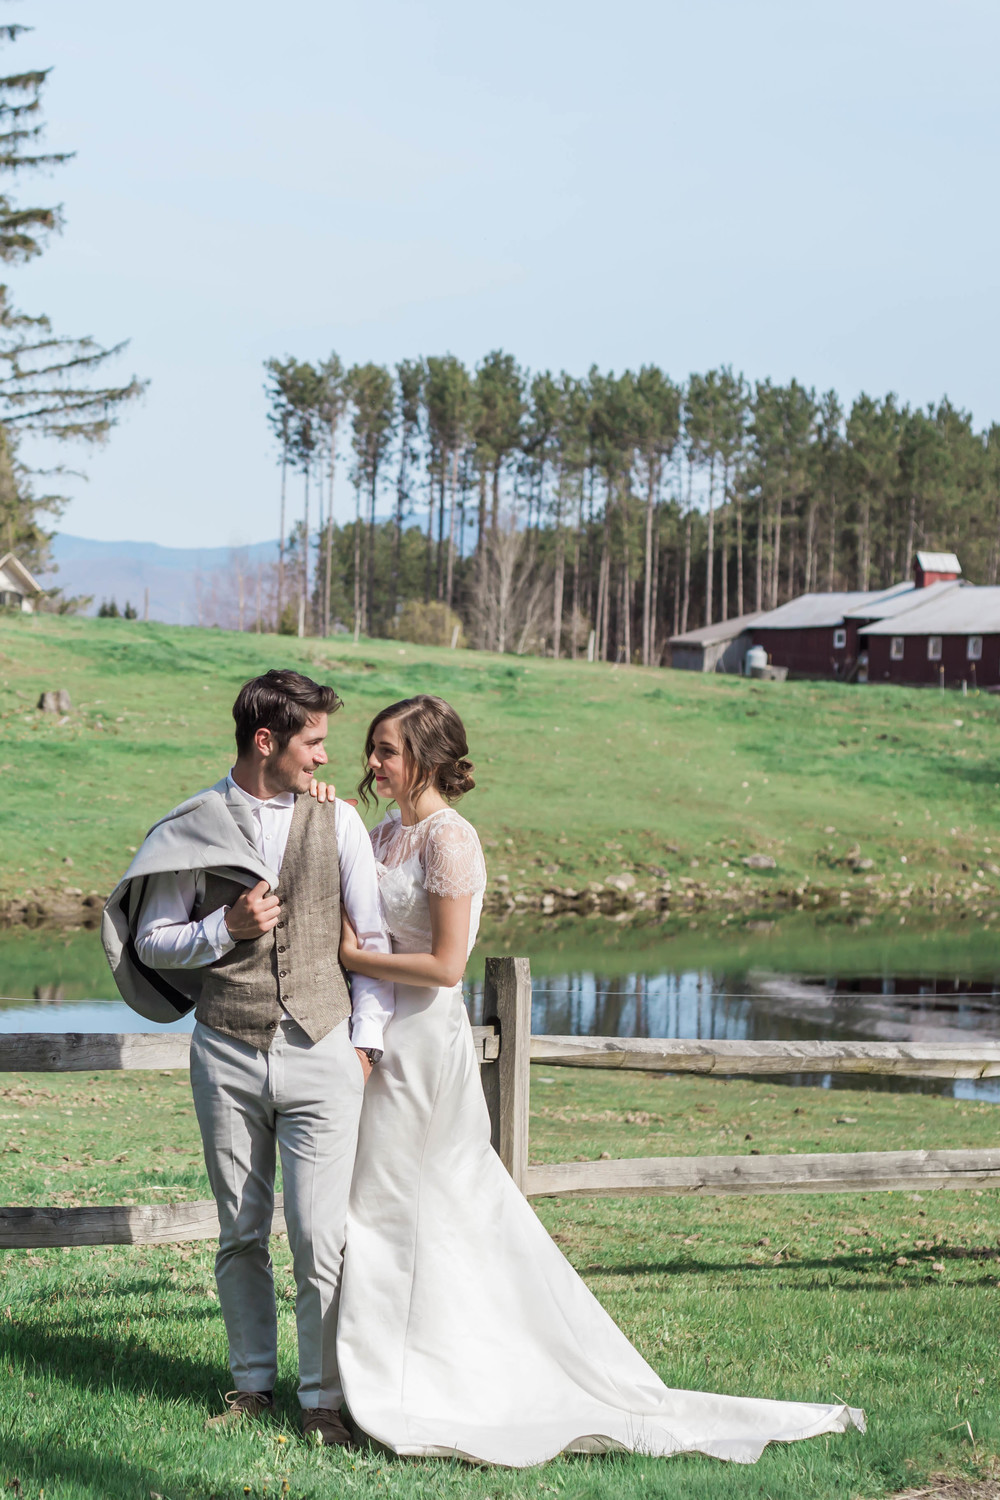 Stowe_NewEnglandWedding_ABPhotography_24 (1 of 1).jpg